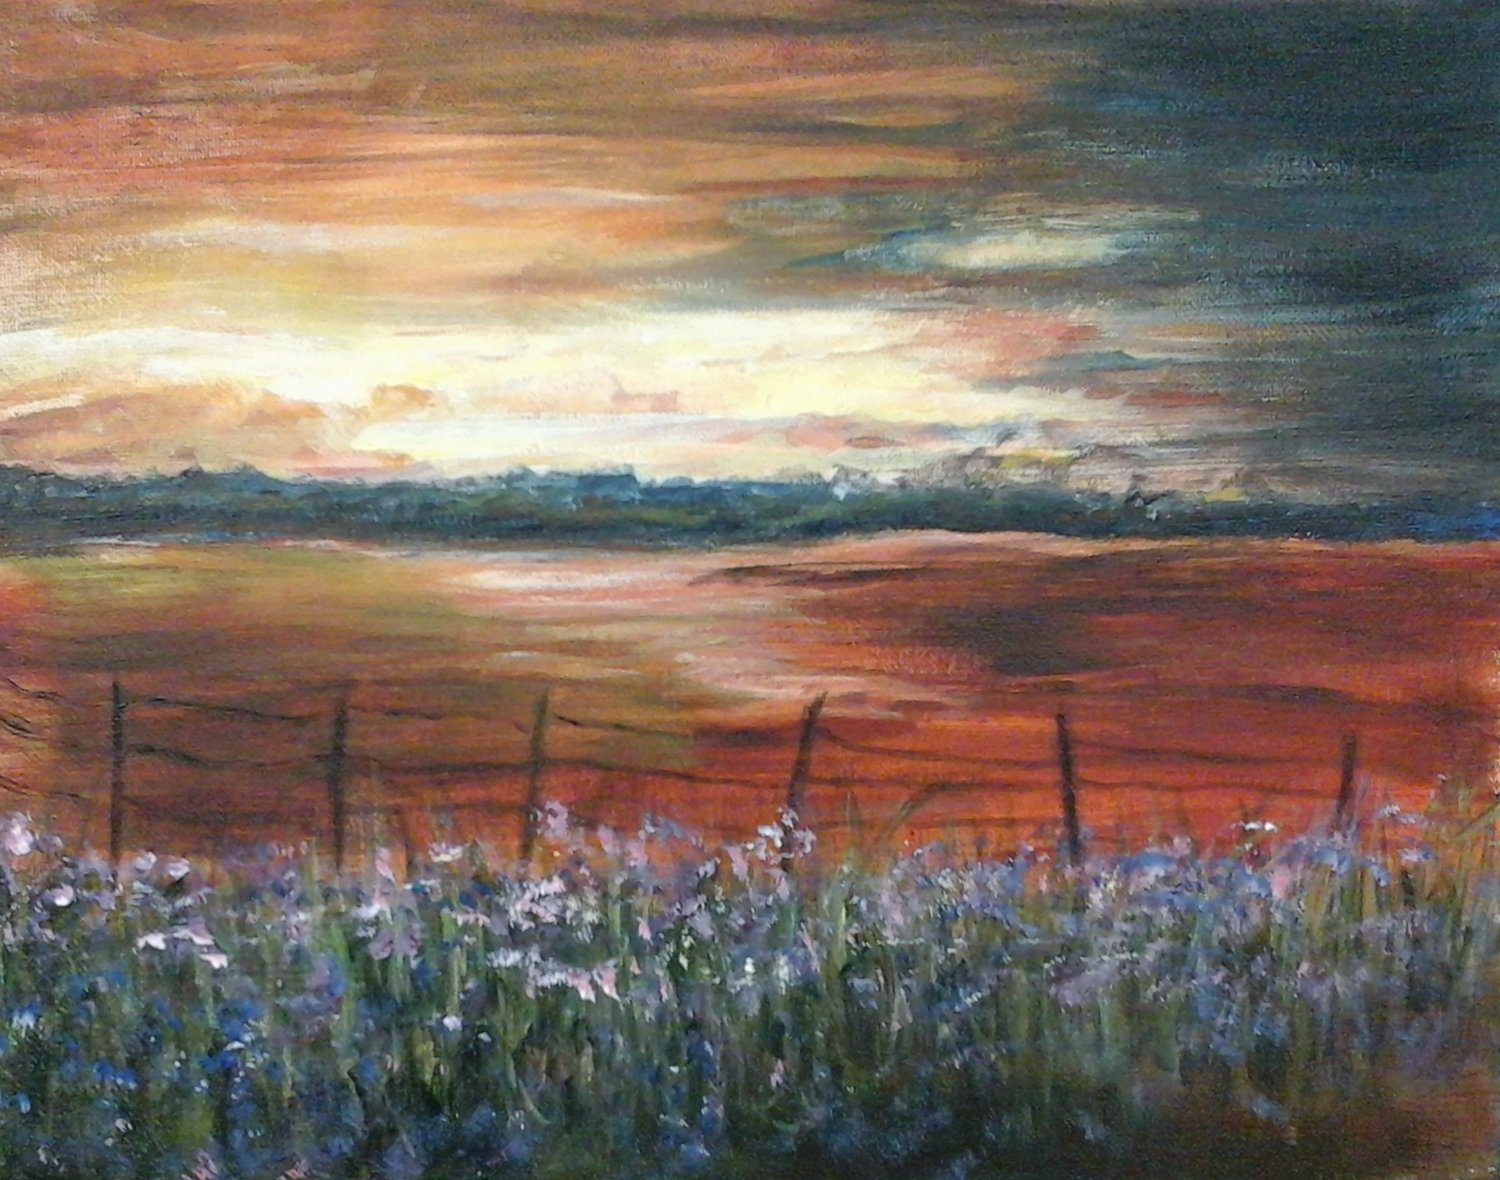 After the Storm - Henne's Afternoon Painting Party